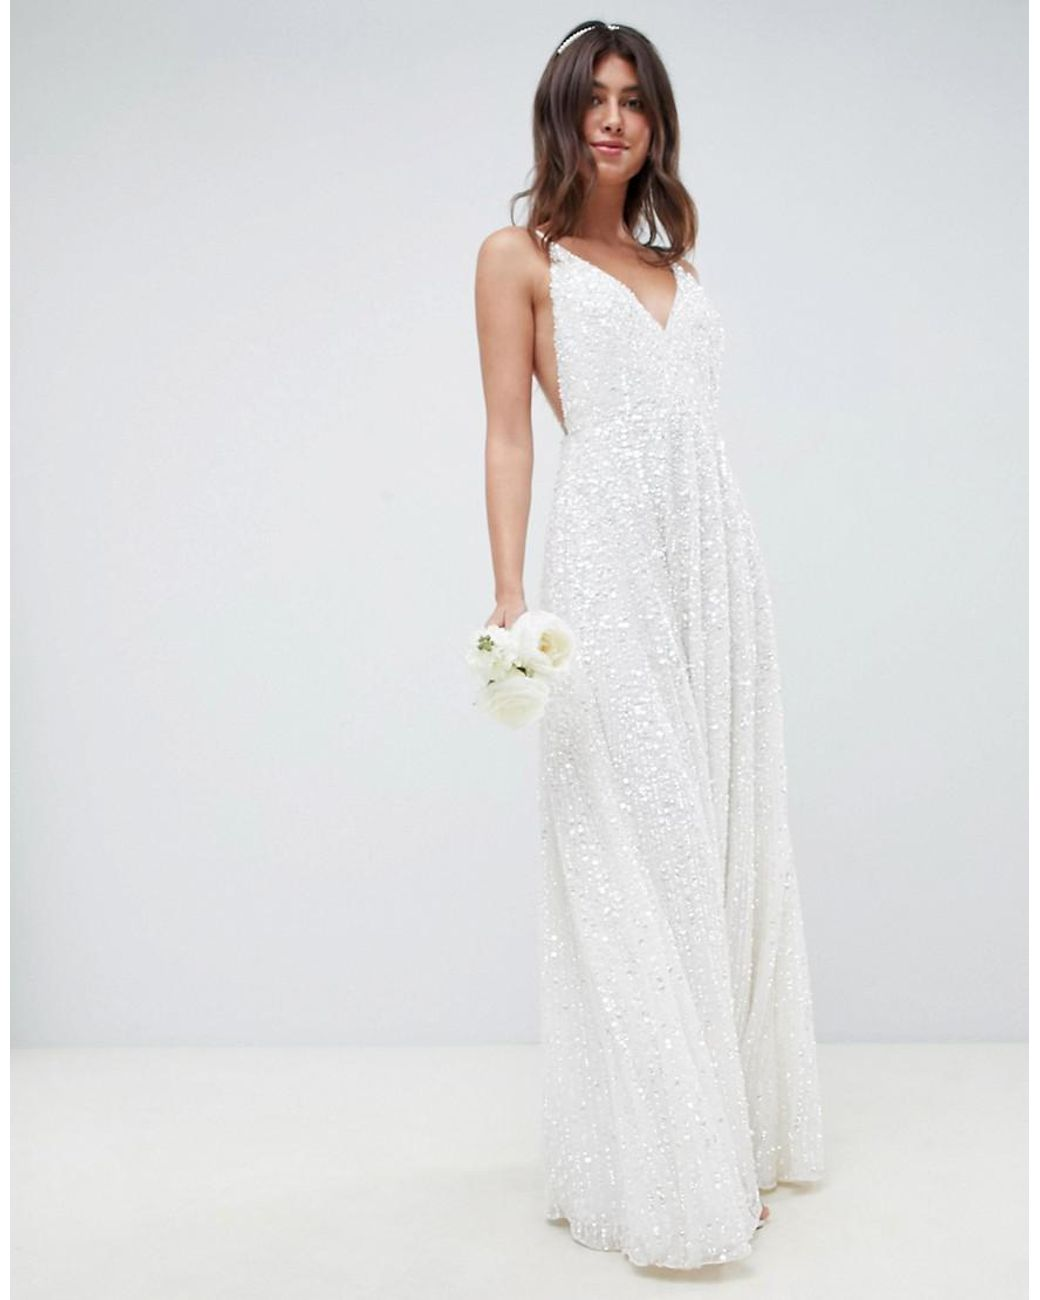 43d1f229ba0 ASOS Sequin Cami Wedding Dress in White - Lyst